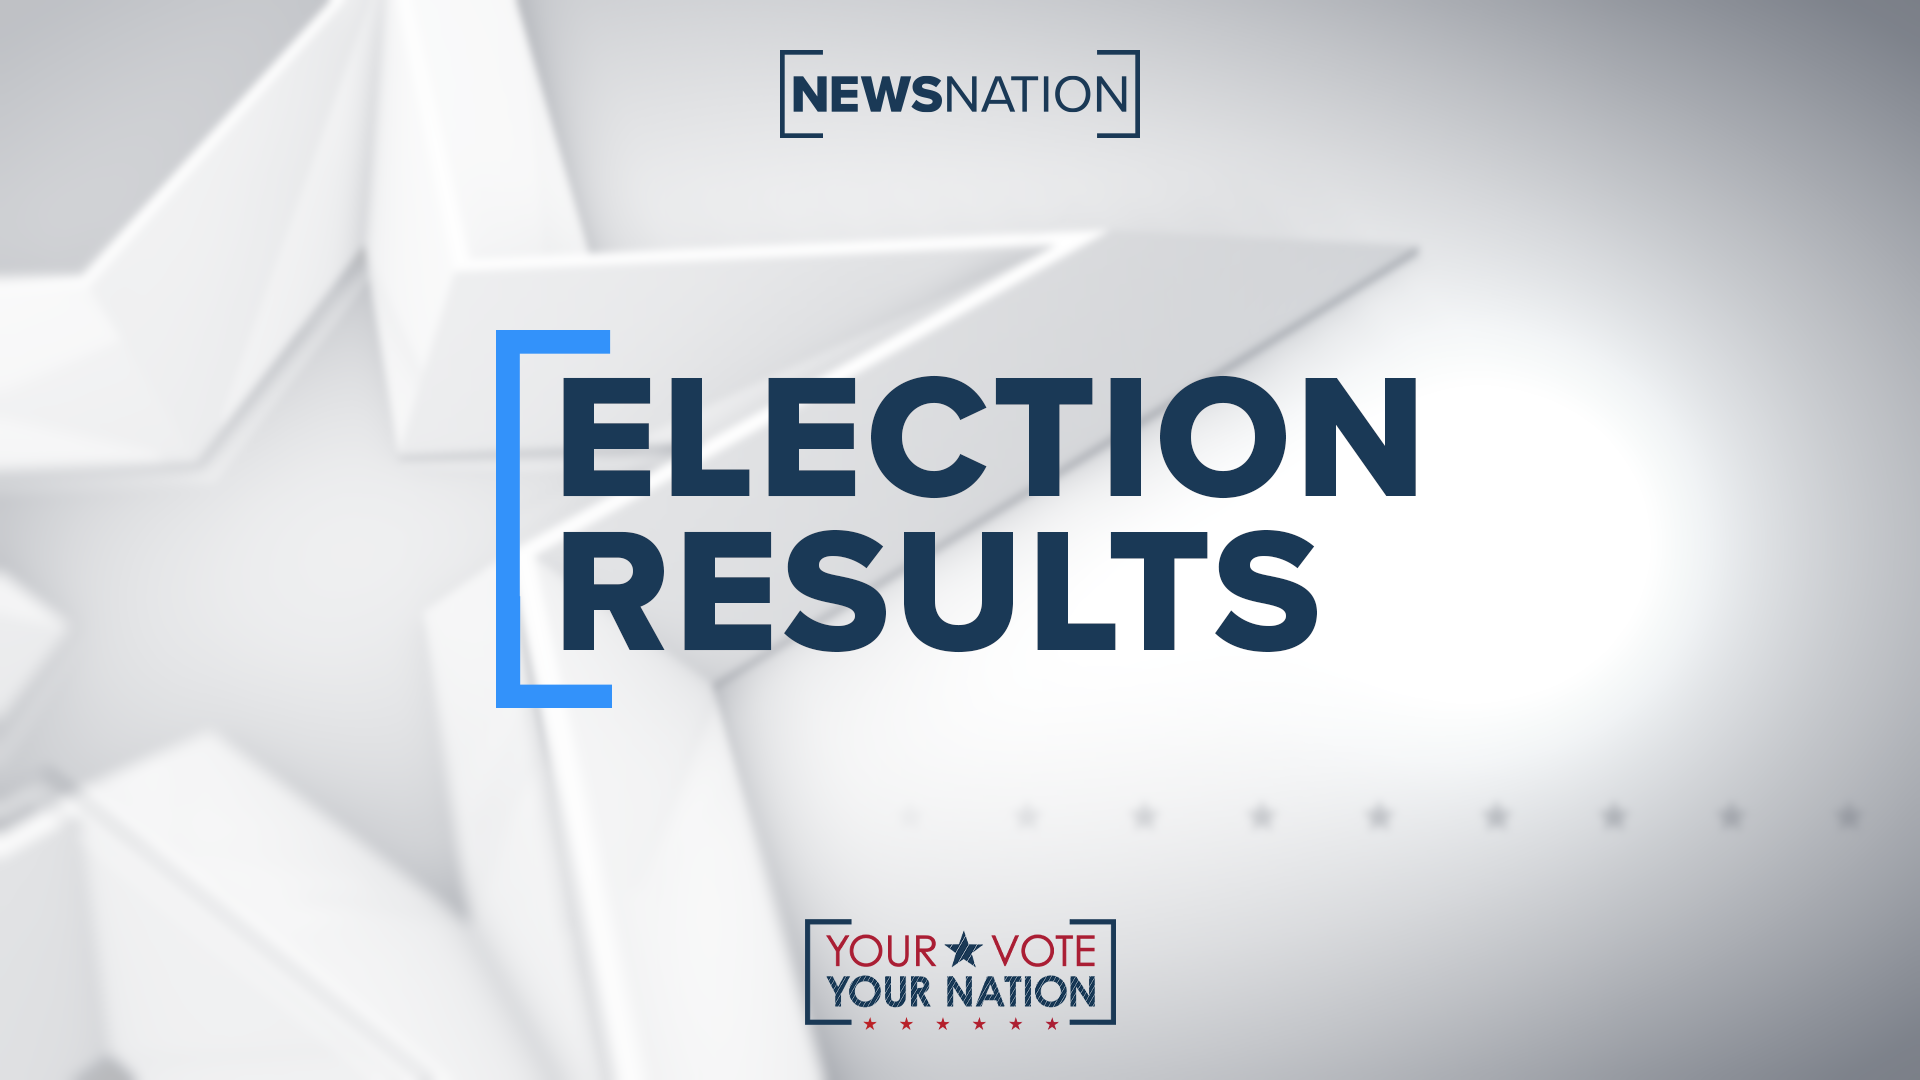 michigan board votes to certify election results newsnation now michigan board votes to certify